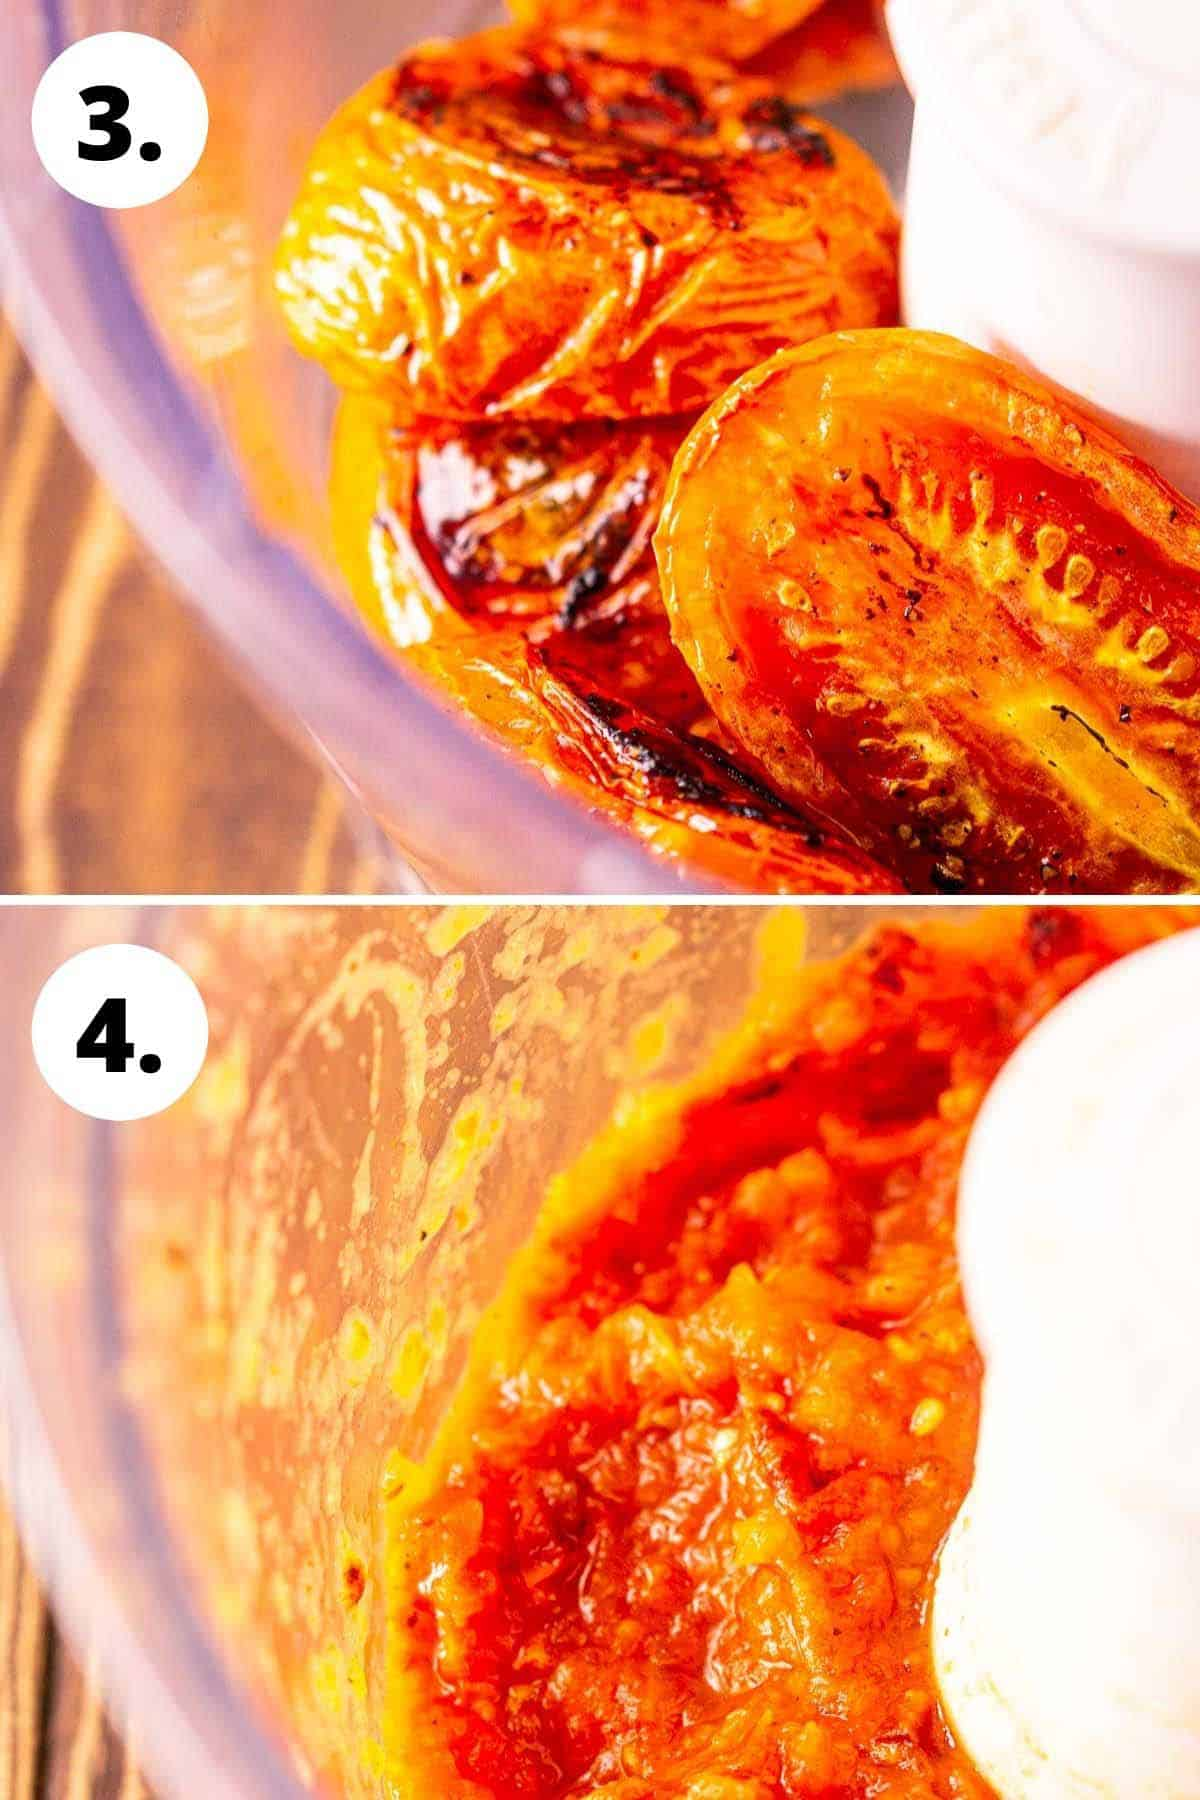 A collage showing the tomatoes in a food processor before blending and then after.